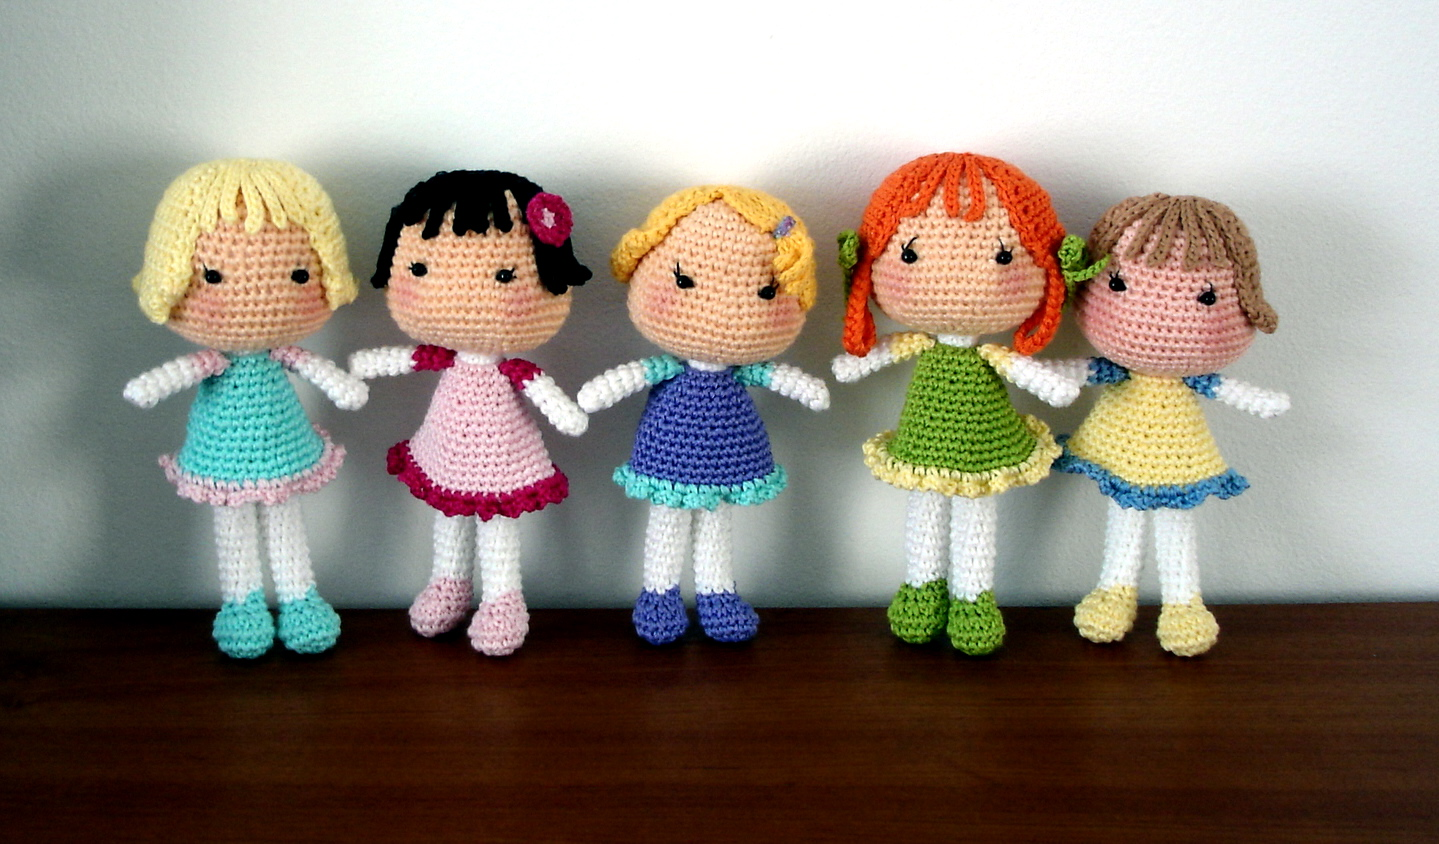 How To Make Amigurumi Dolls For Beginners : Amigurumi G